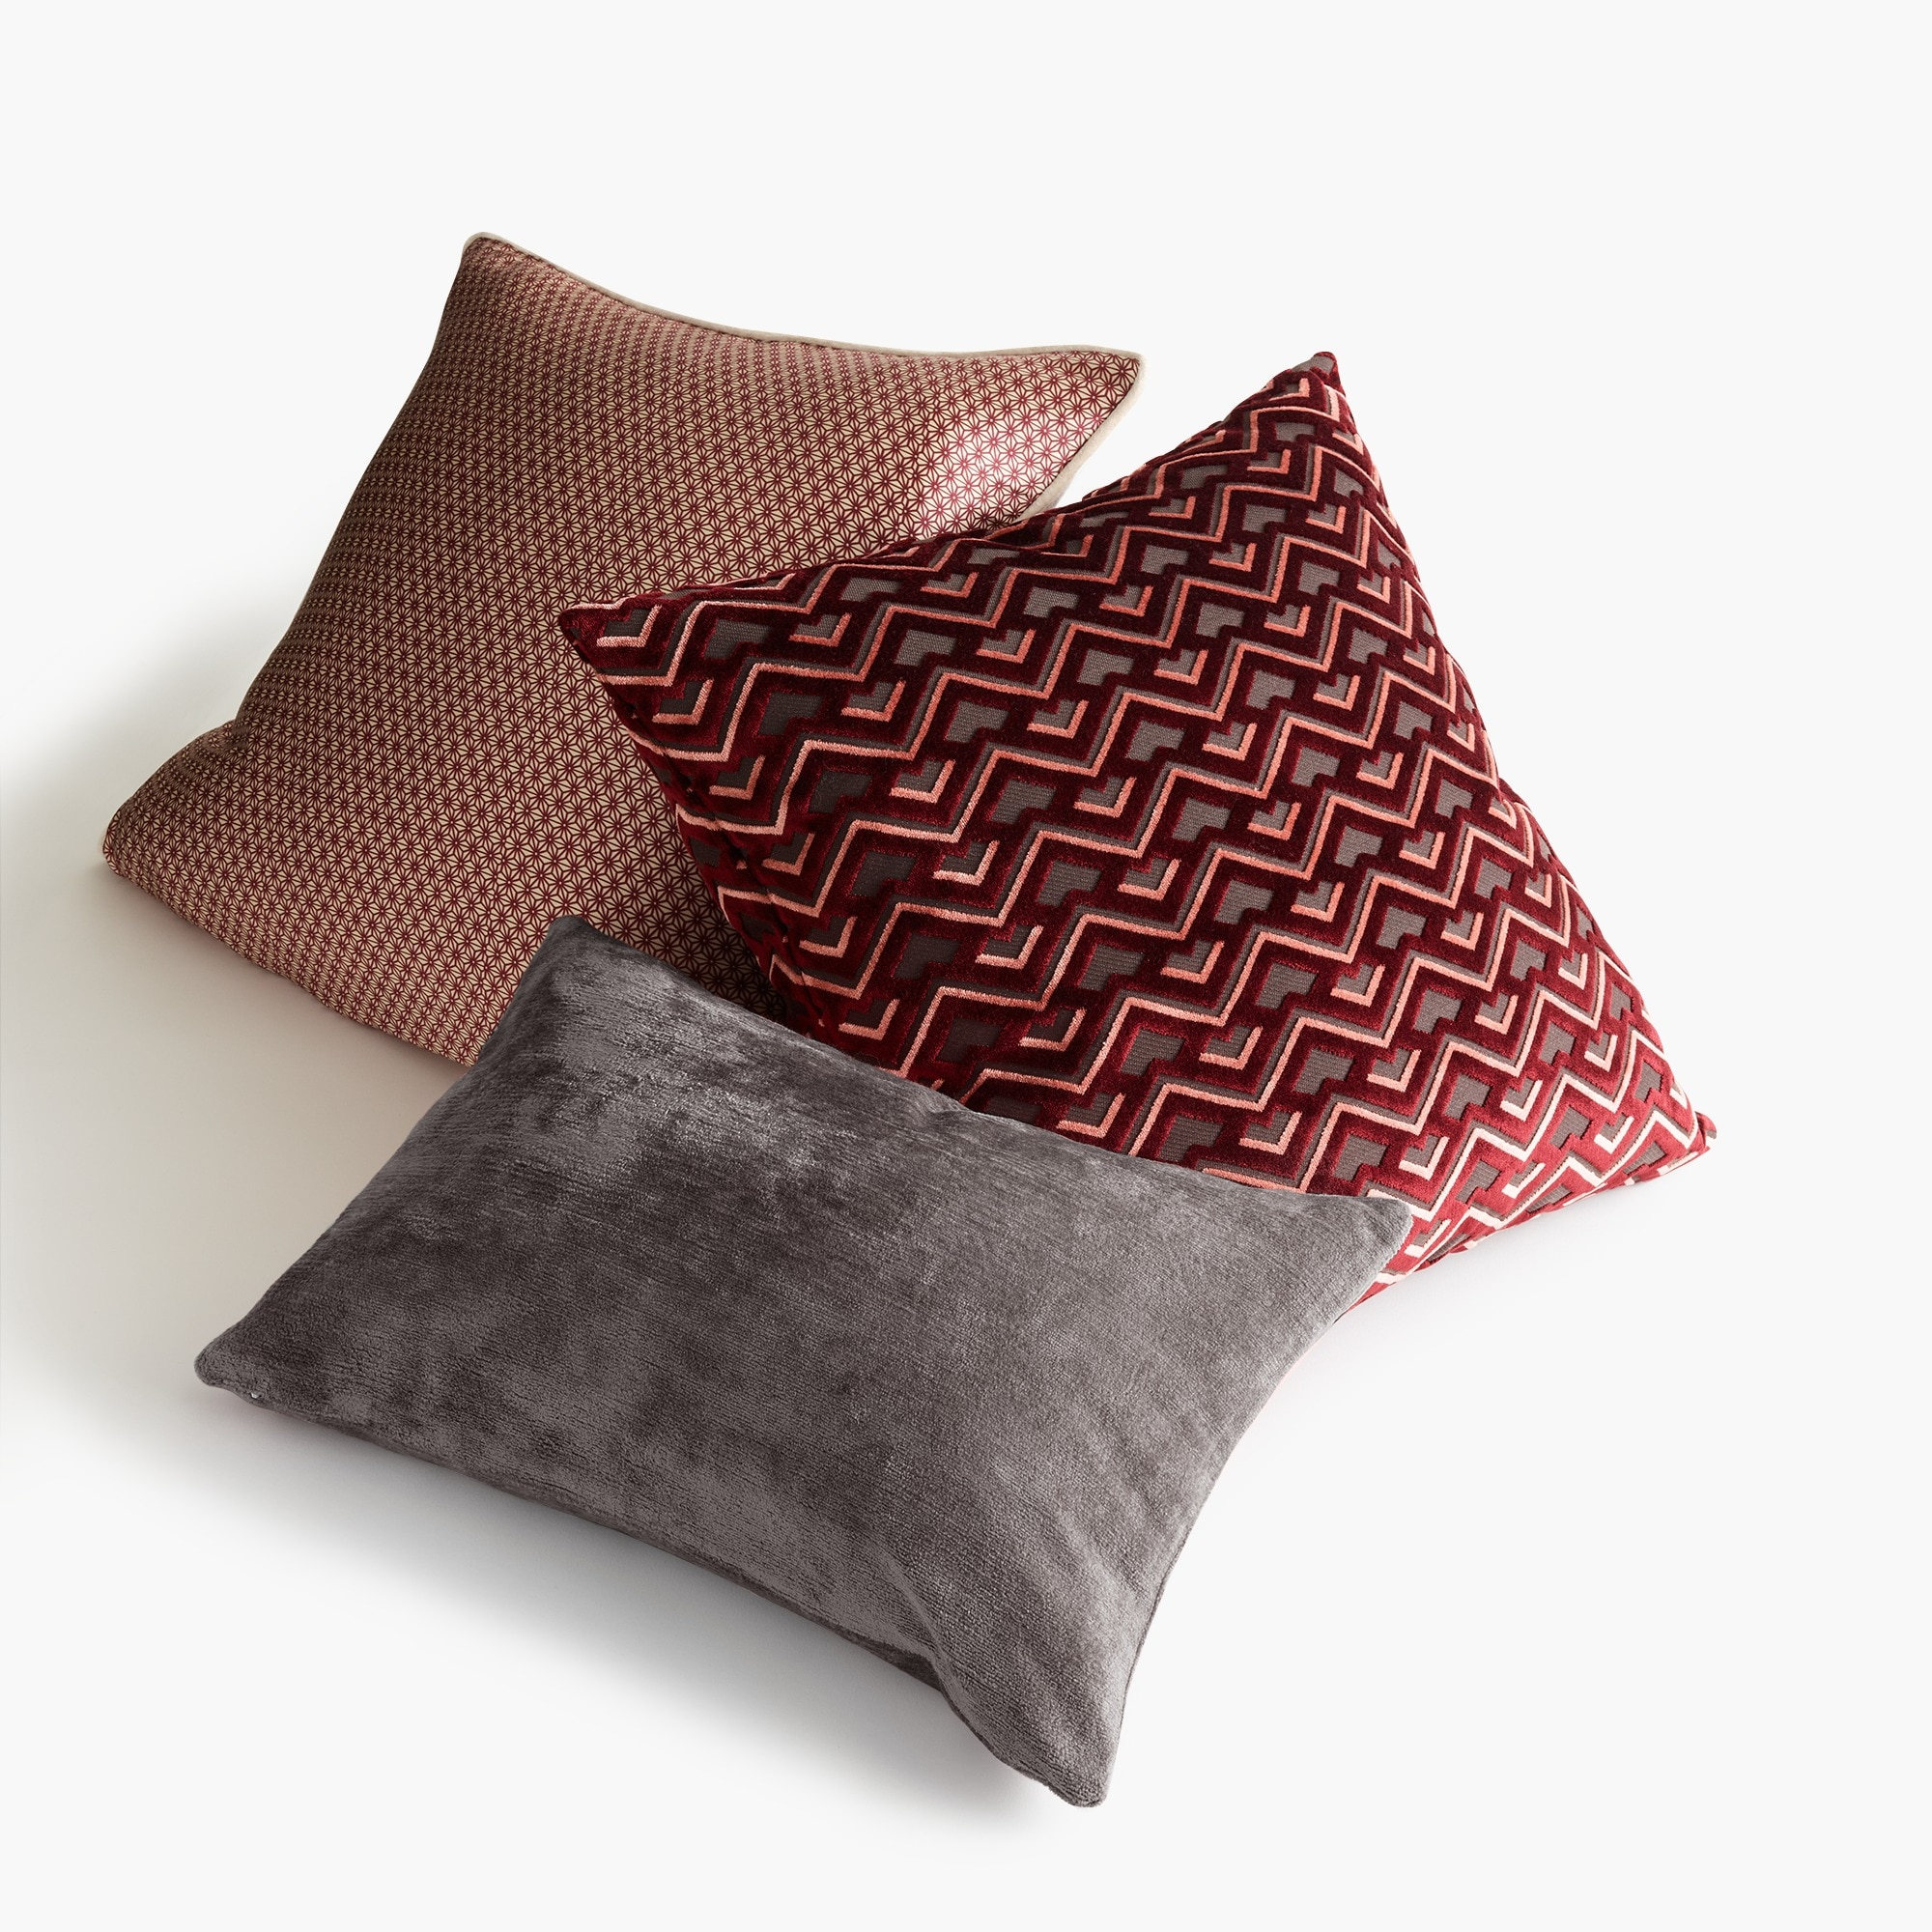 Compono geometric star pillow